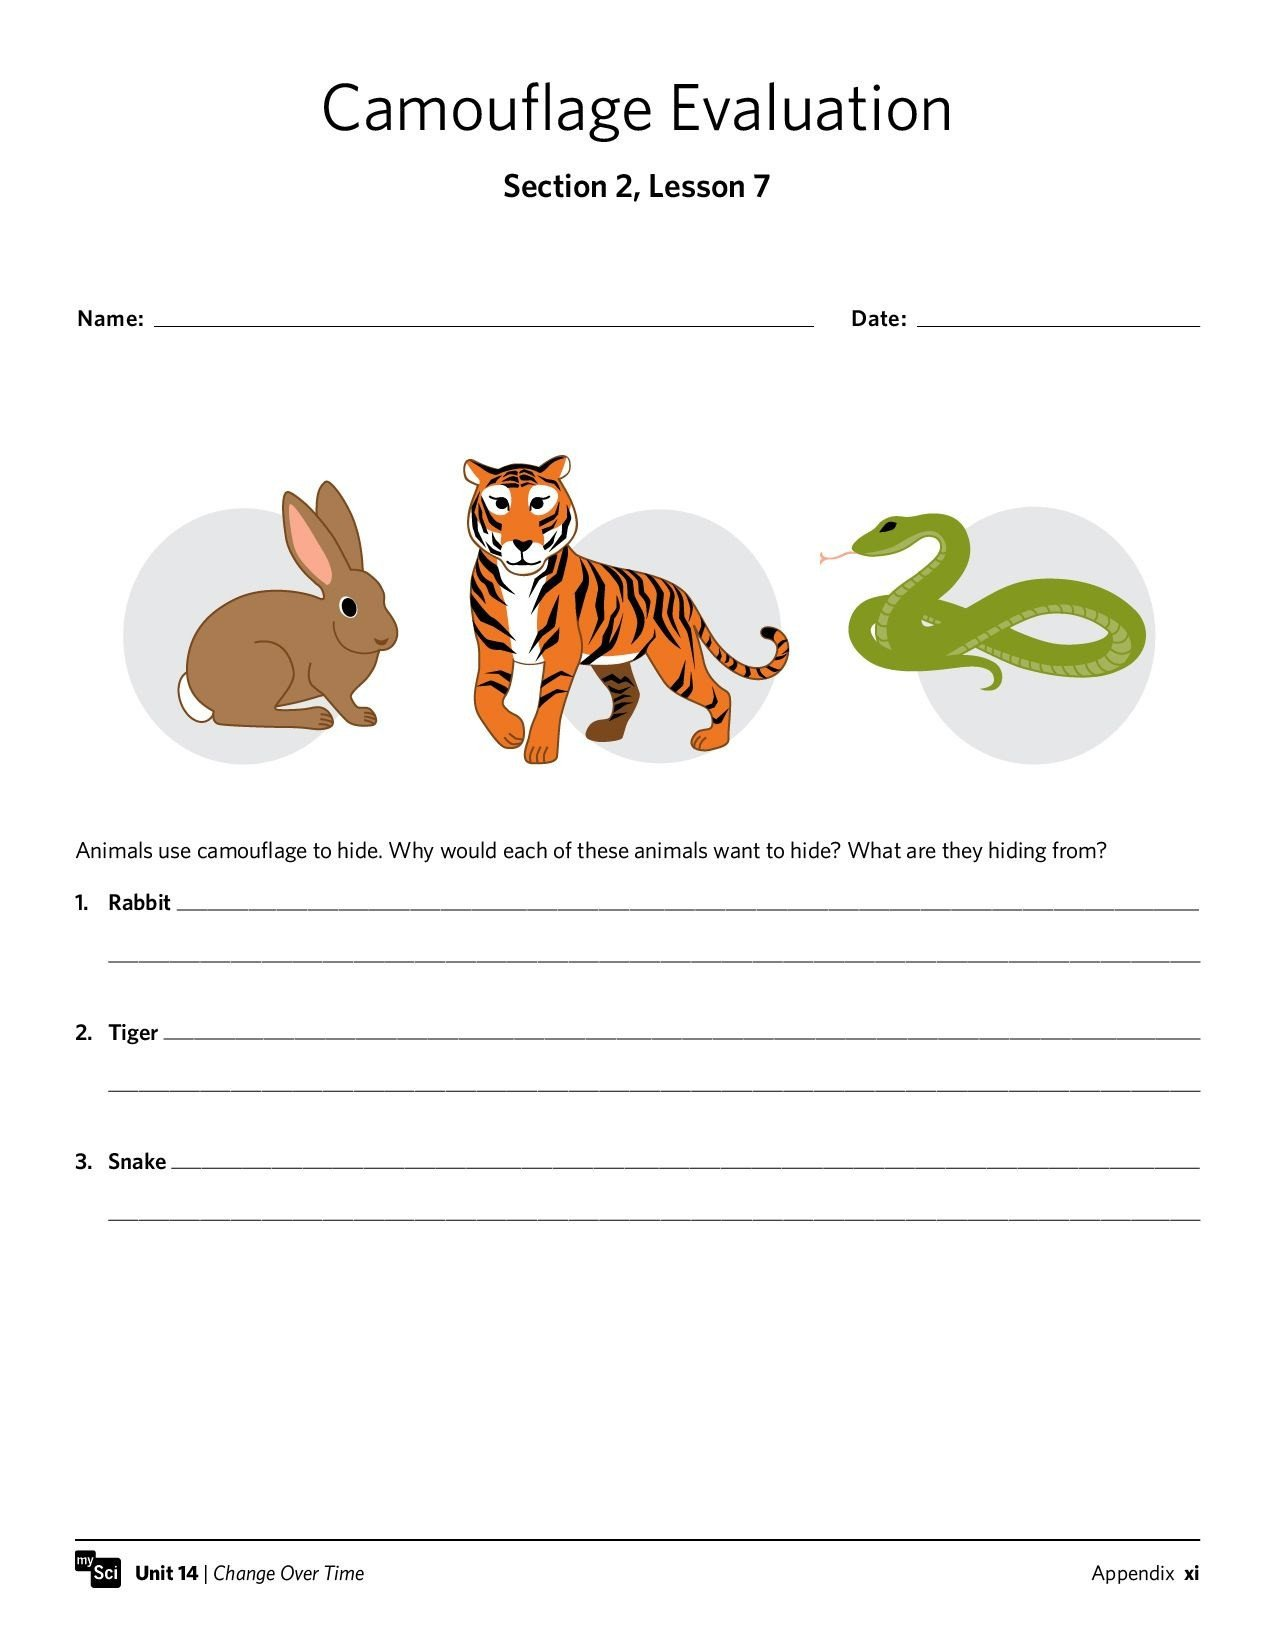 mysci unit 14 isp third grade third grade grade 1 worksheets free printable worksheets animal adaptations